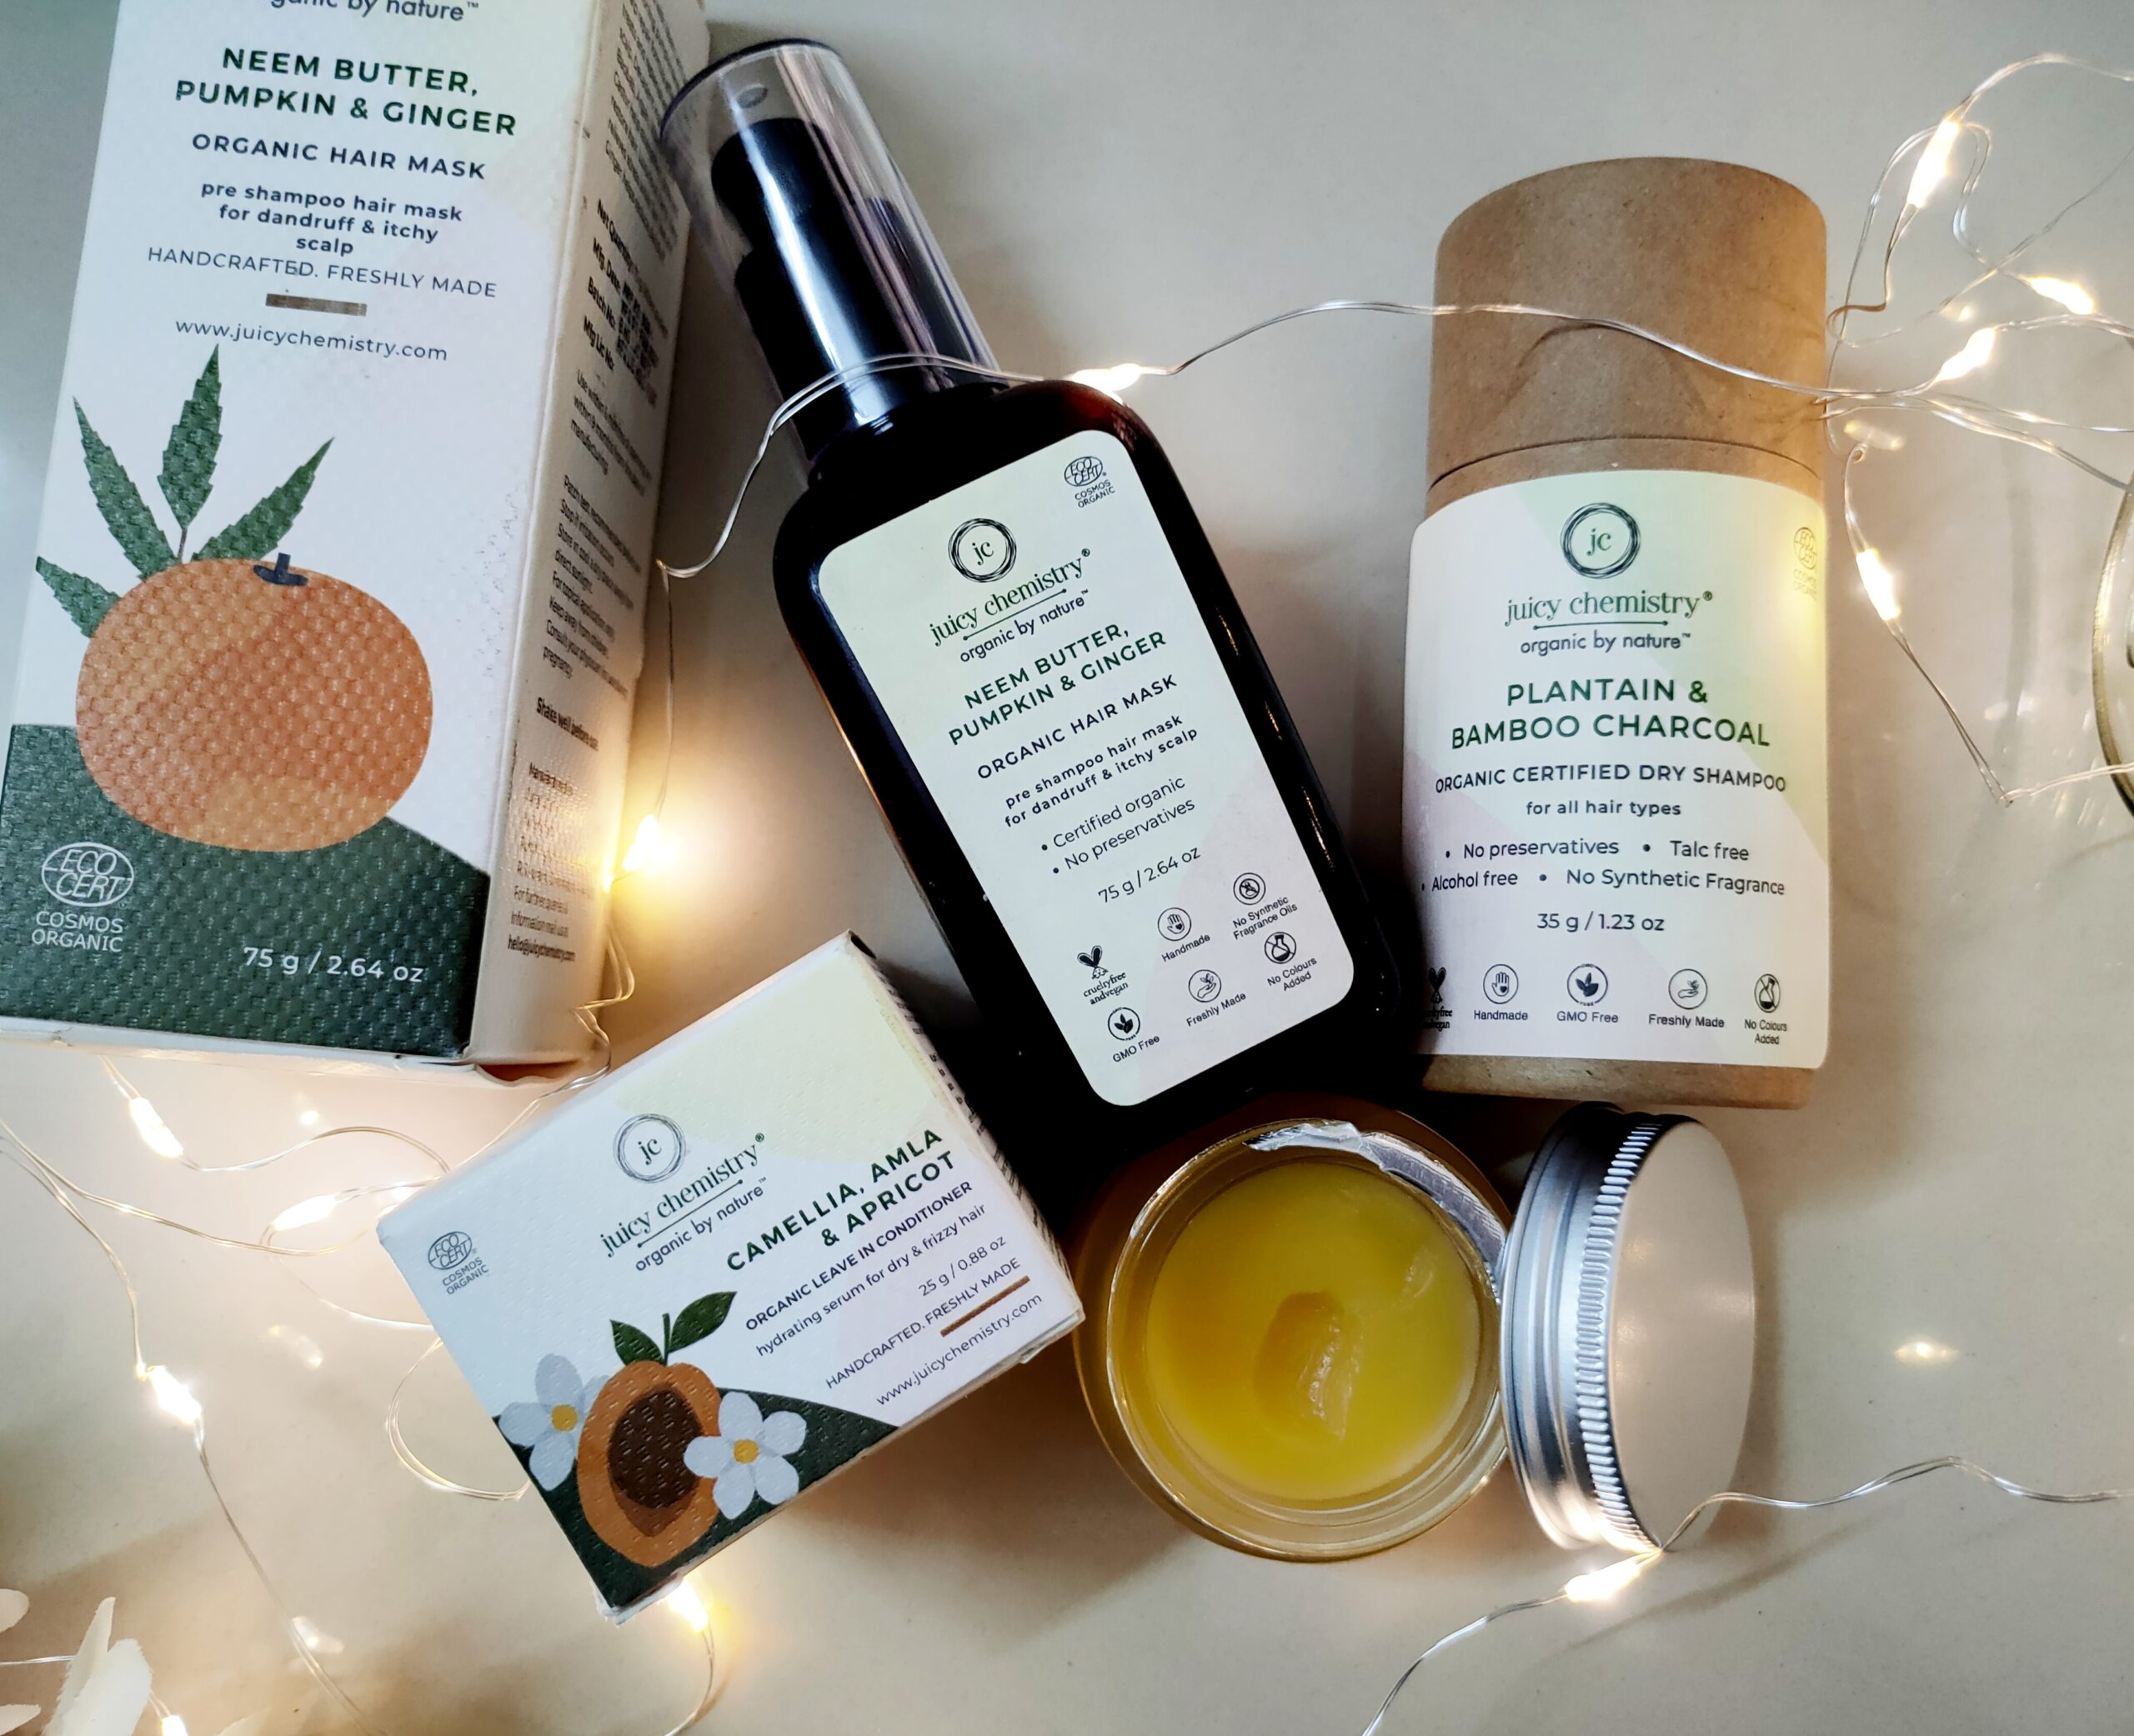 We Tried Juicy Chemistry Organic and Natural Products, and Honestly, Wow